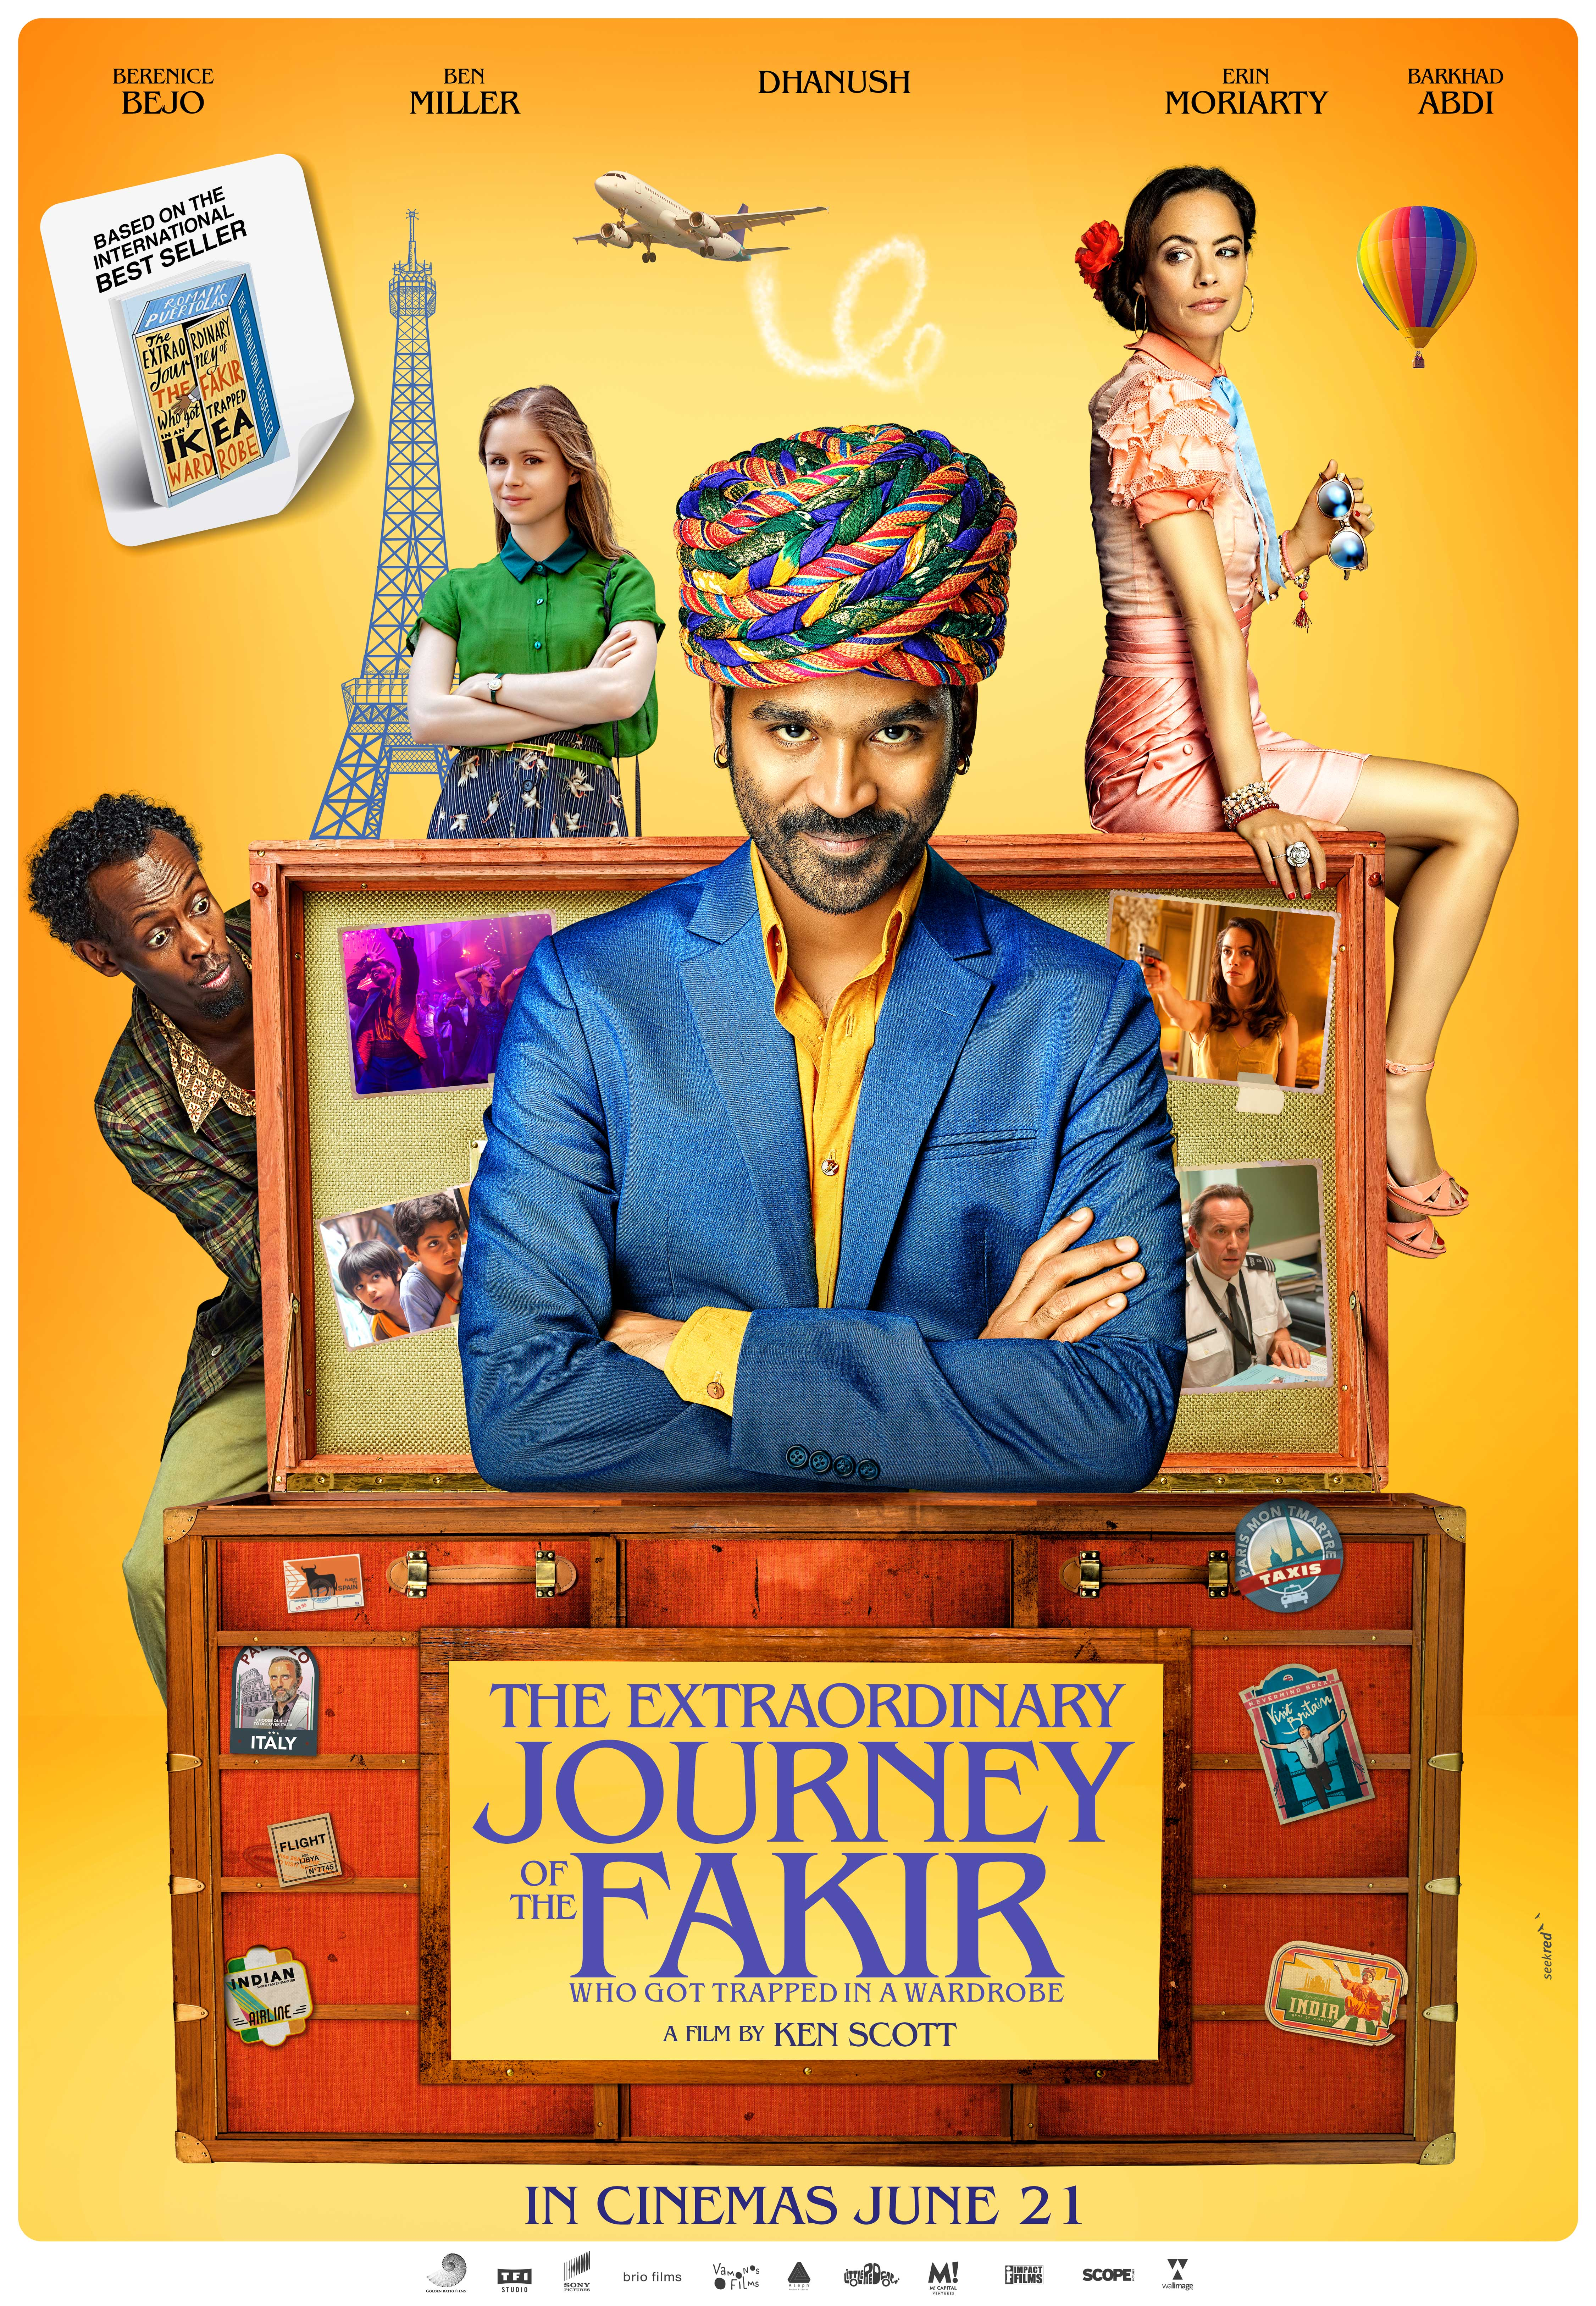 Dhanush's First International Film: All You Need to Know About The Extraordinary Journey of the Fakir